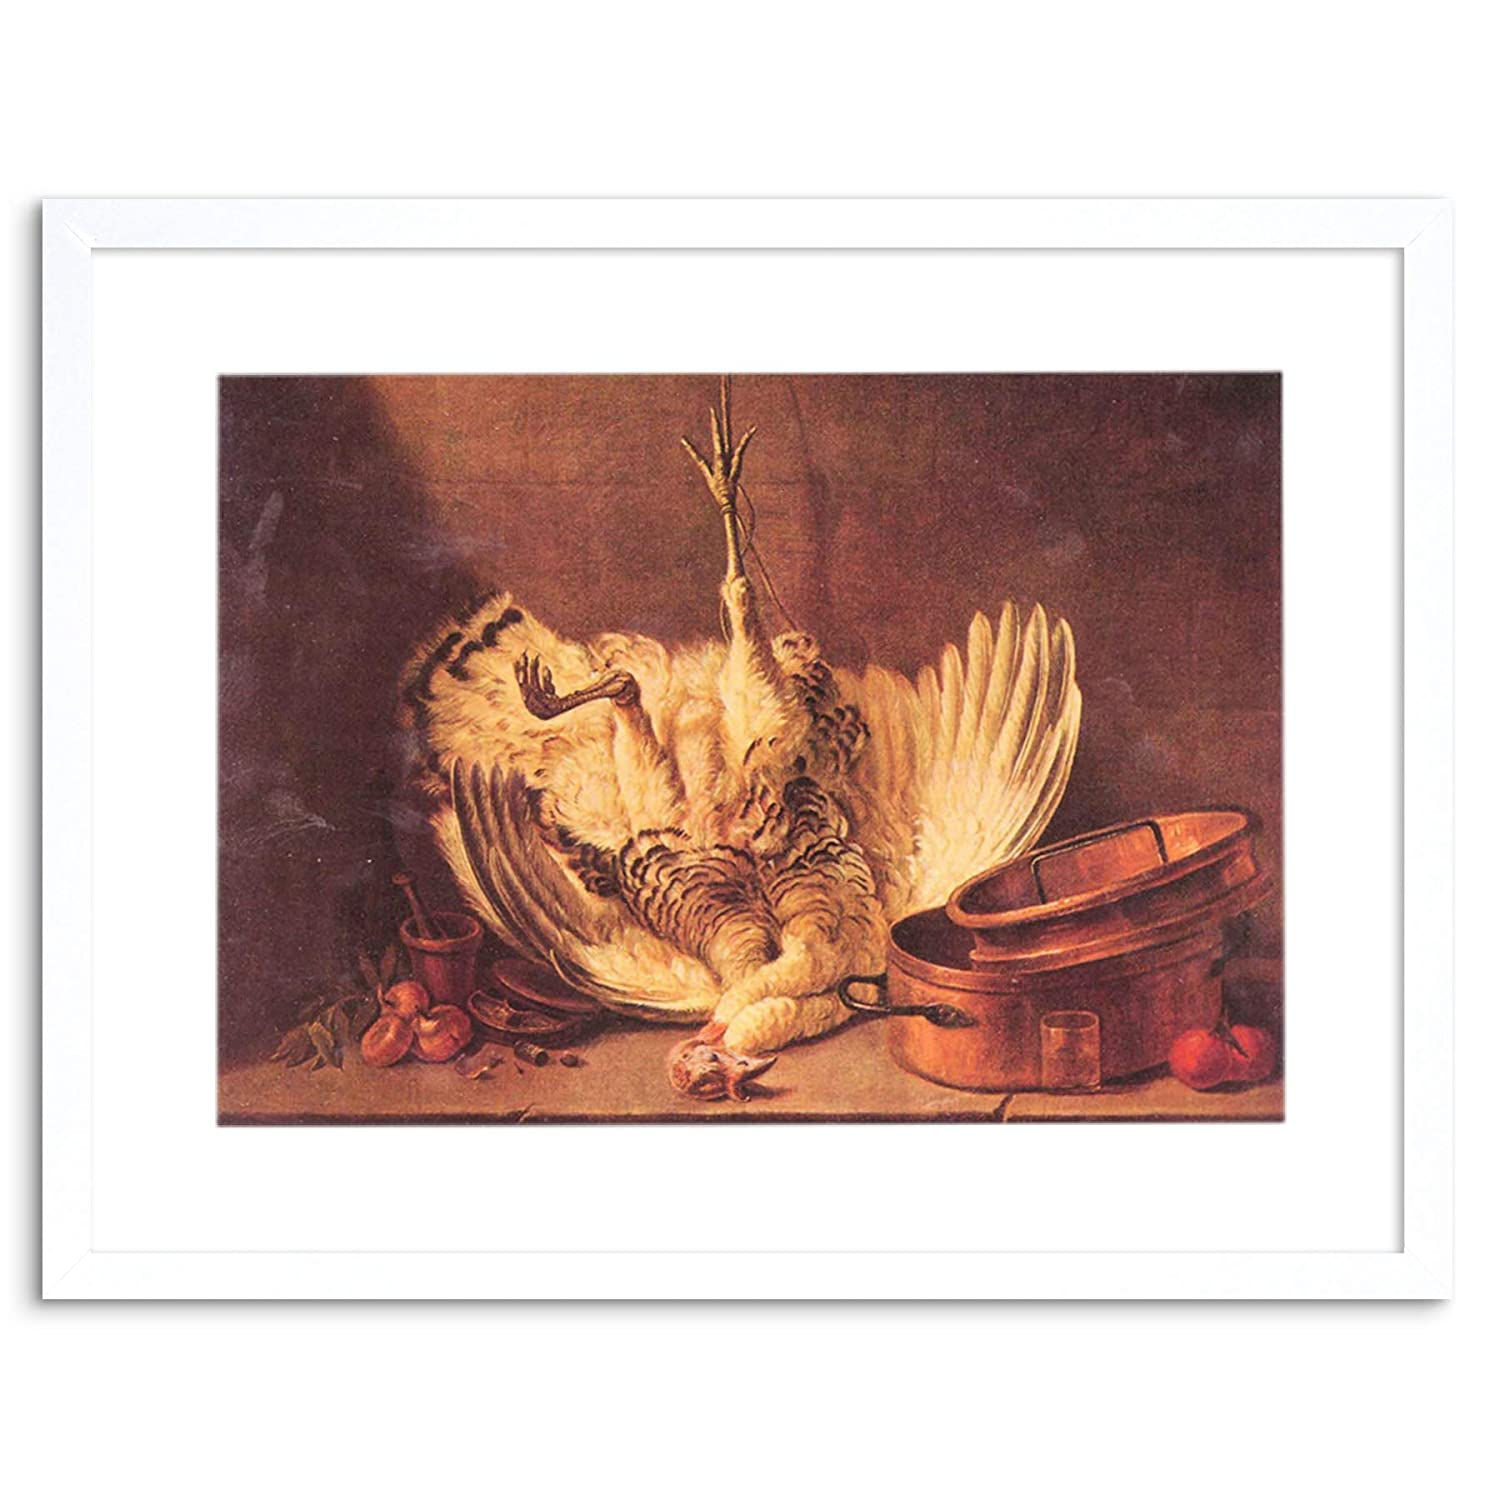 0d63af47c2 Wee Blue Coo PAINTING CHARDIN STILL LIFE TURKEY OLD MASTER FRAMED PICTURE  ART PRINT F97X8279  Amazon.co.uk  Kitchen   Home